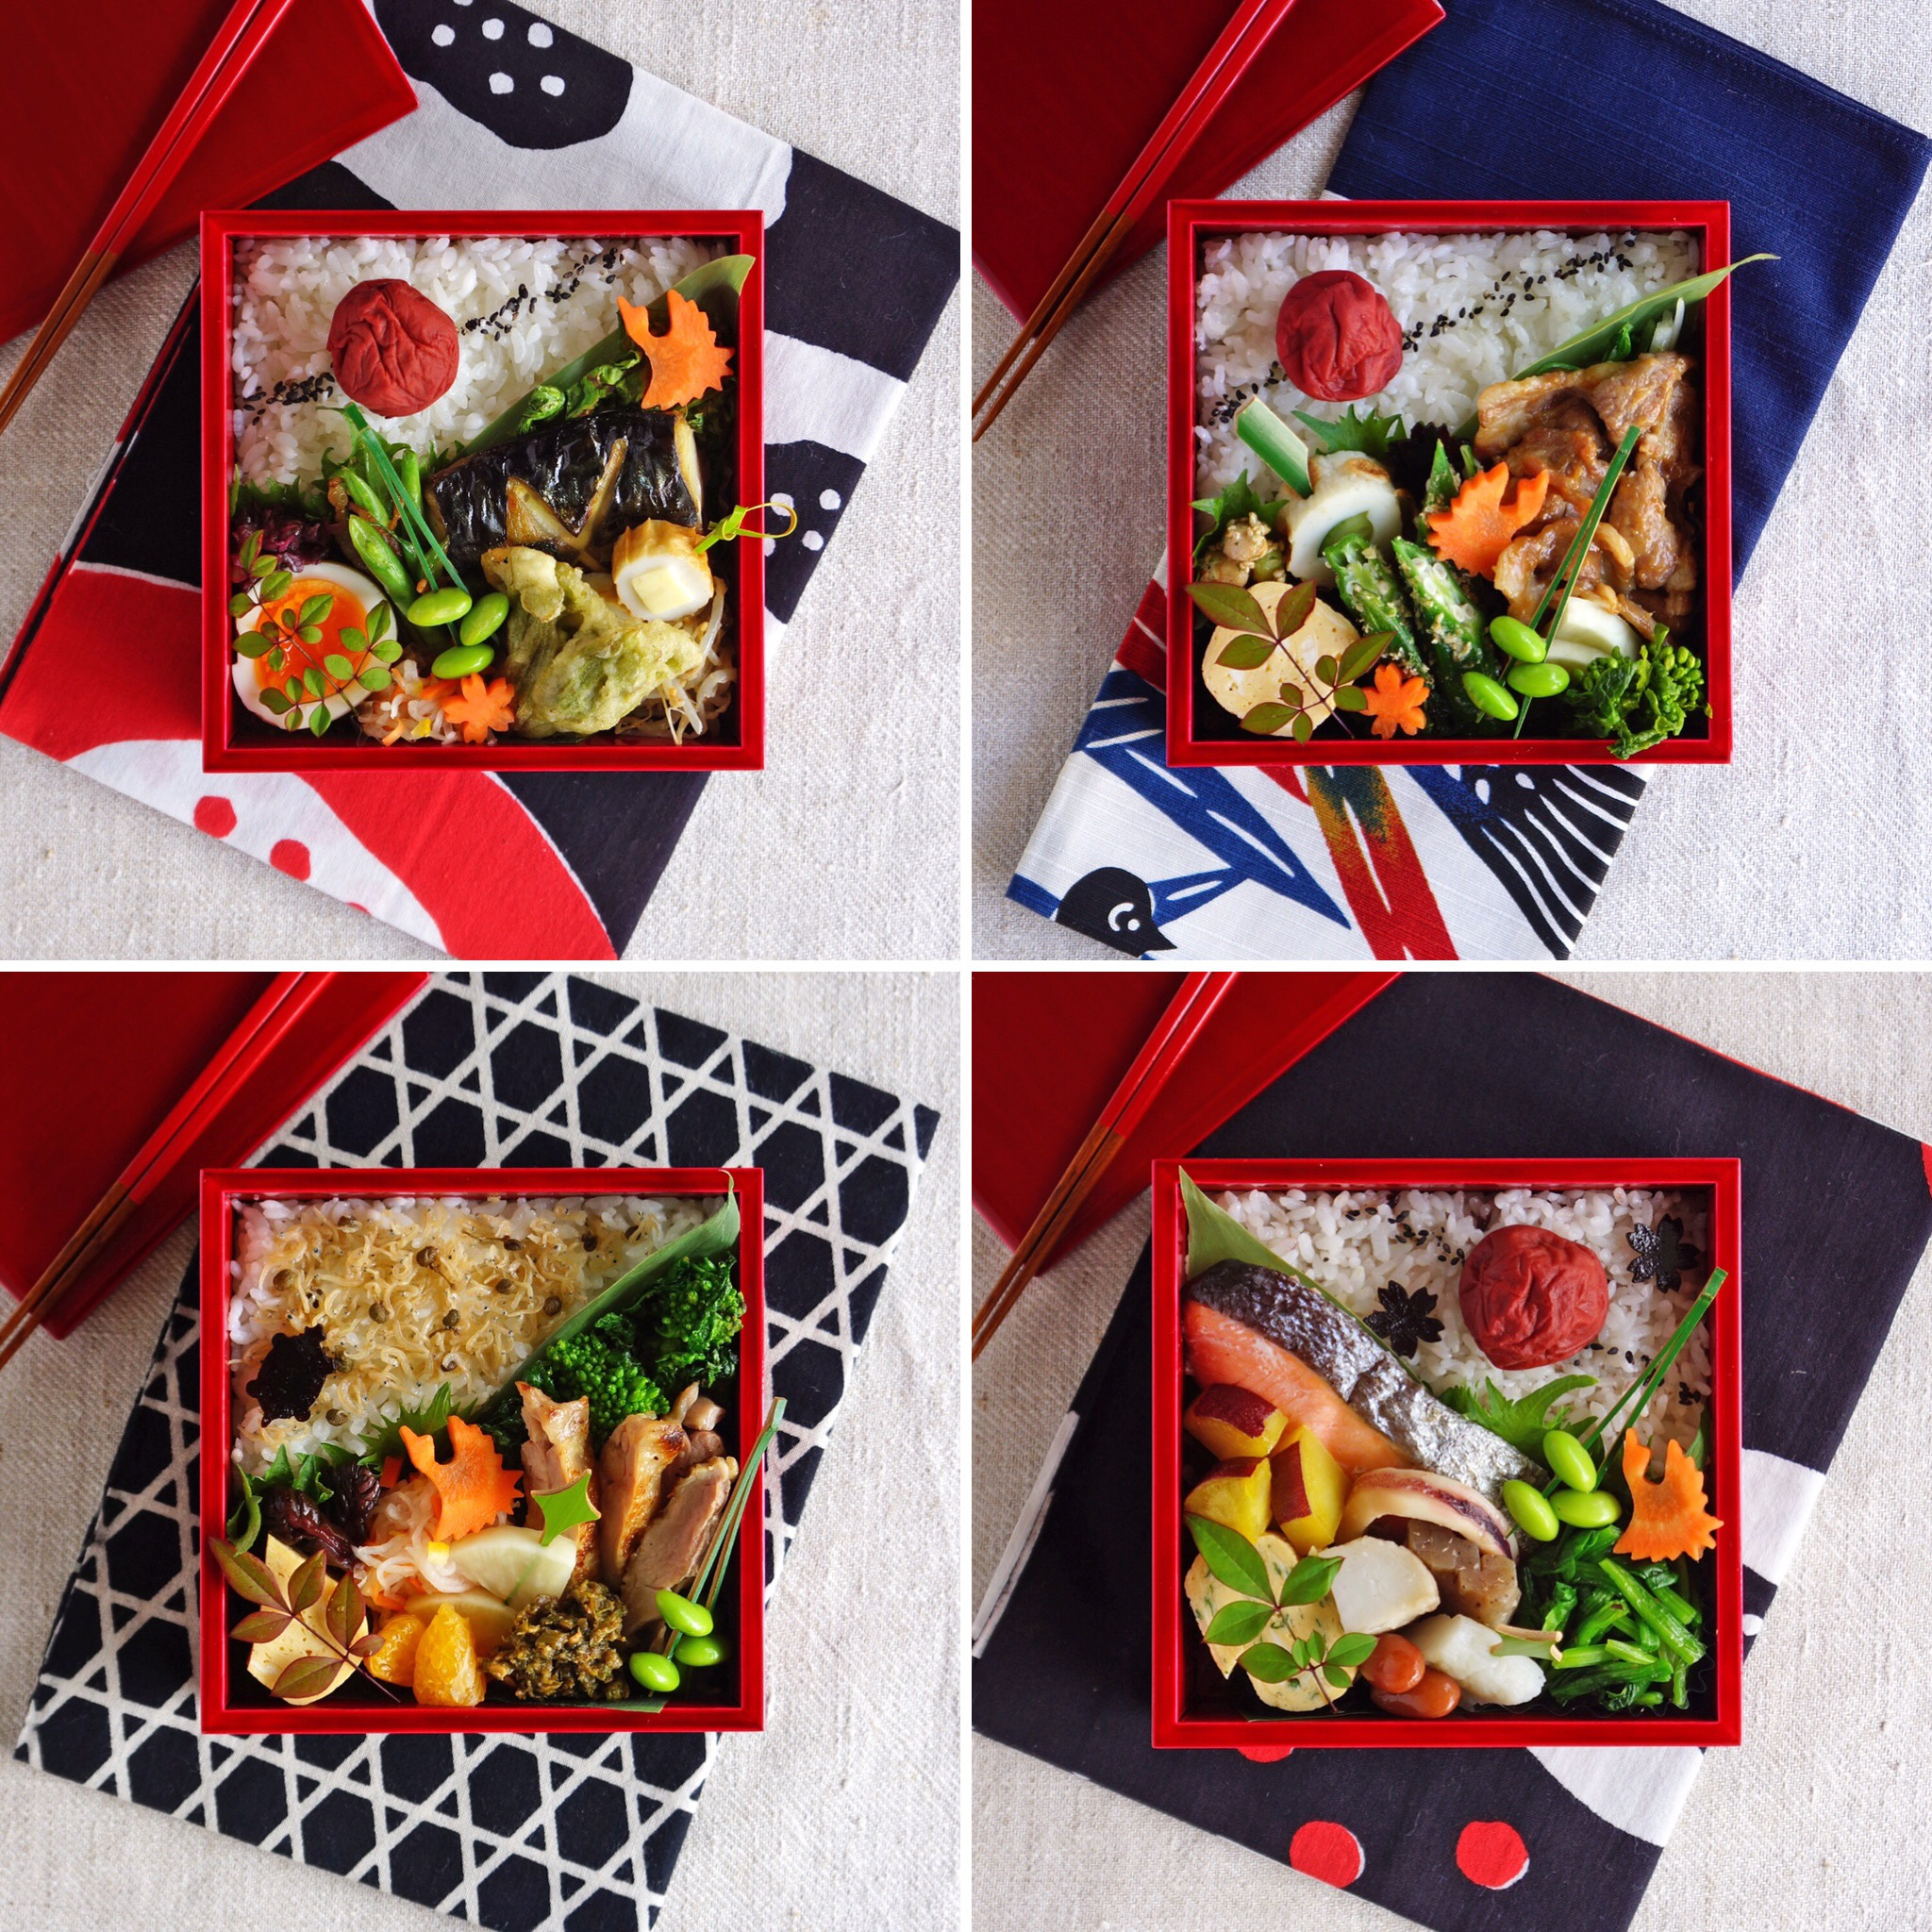 my favorite bentos!